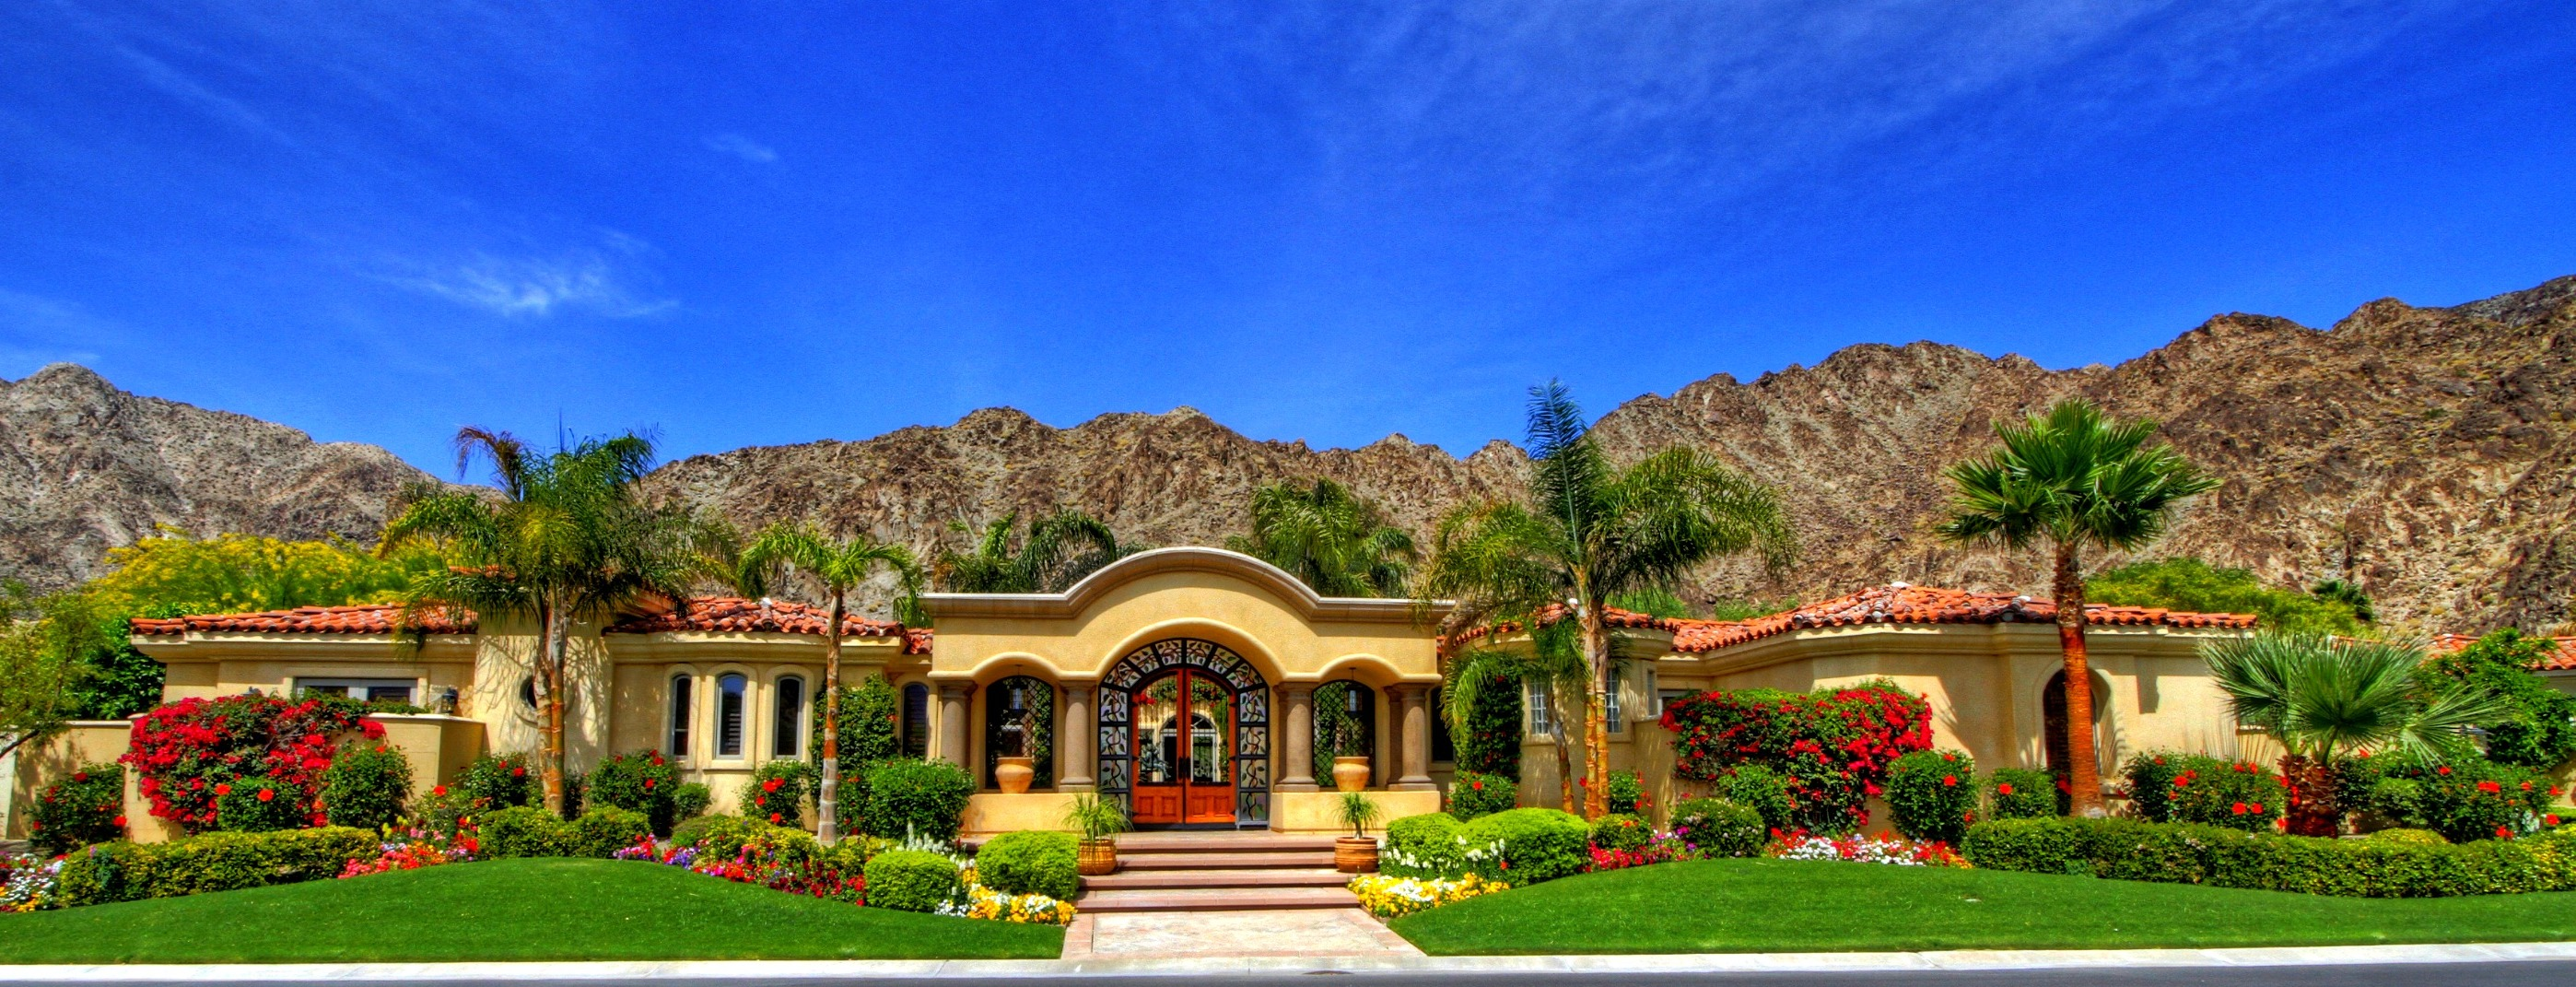 La Quinta Ca Luxury Real Estate Big Winner At Humana S Pga